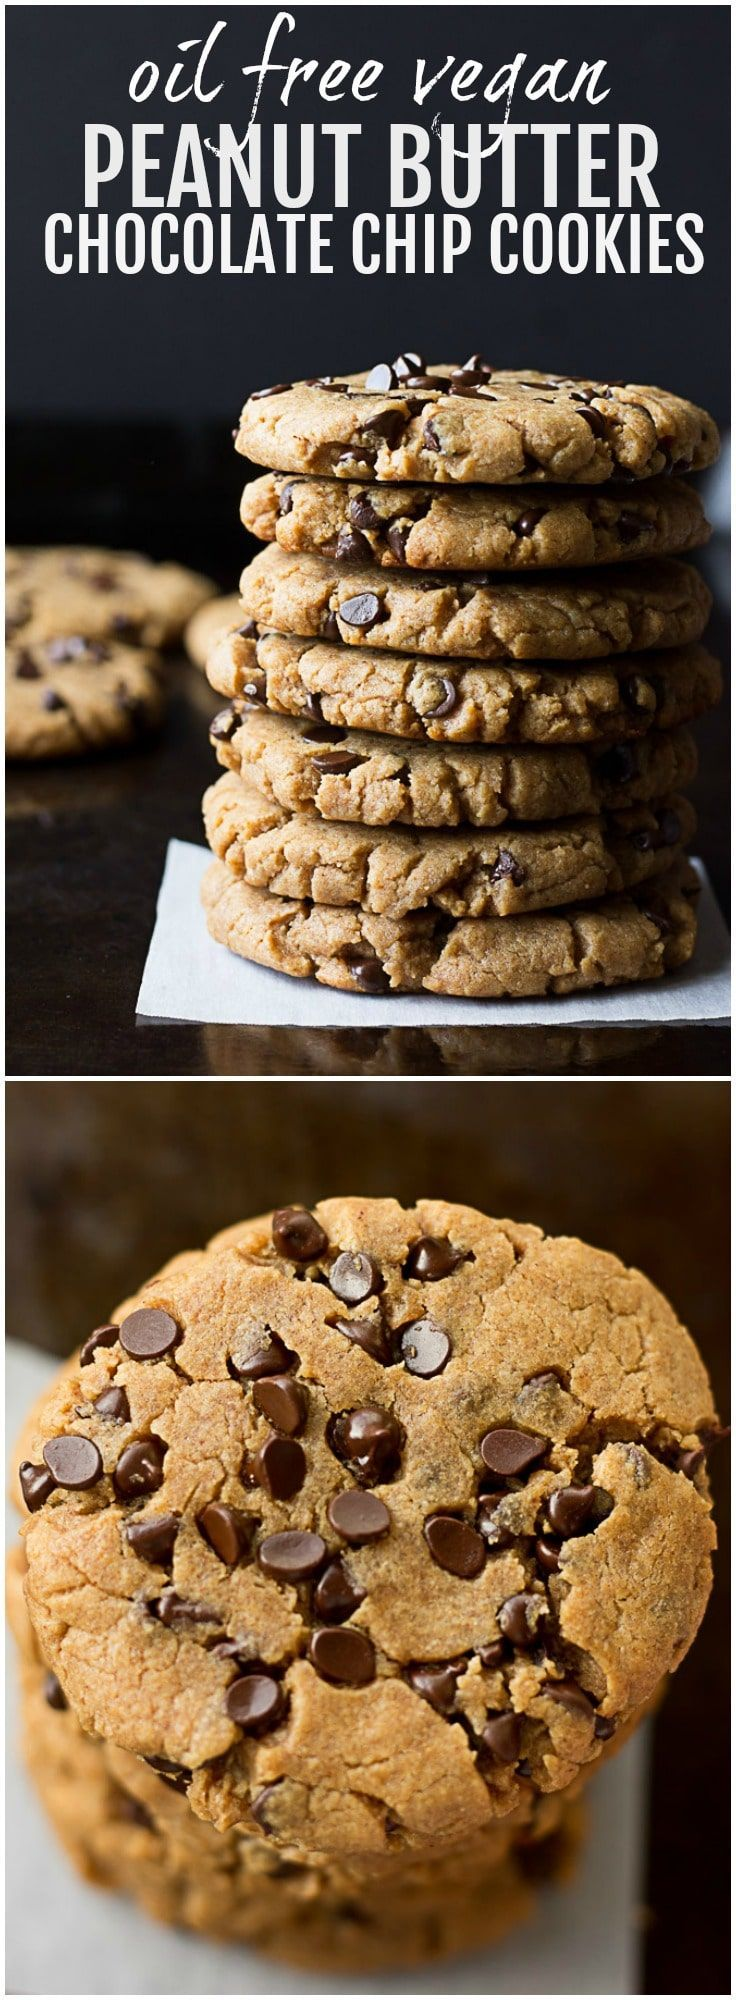 Oil Free Vegan Peanut Butter Chocolate Chip Cookies | Nora Cooks